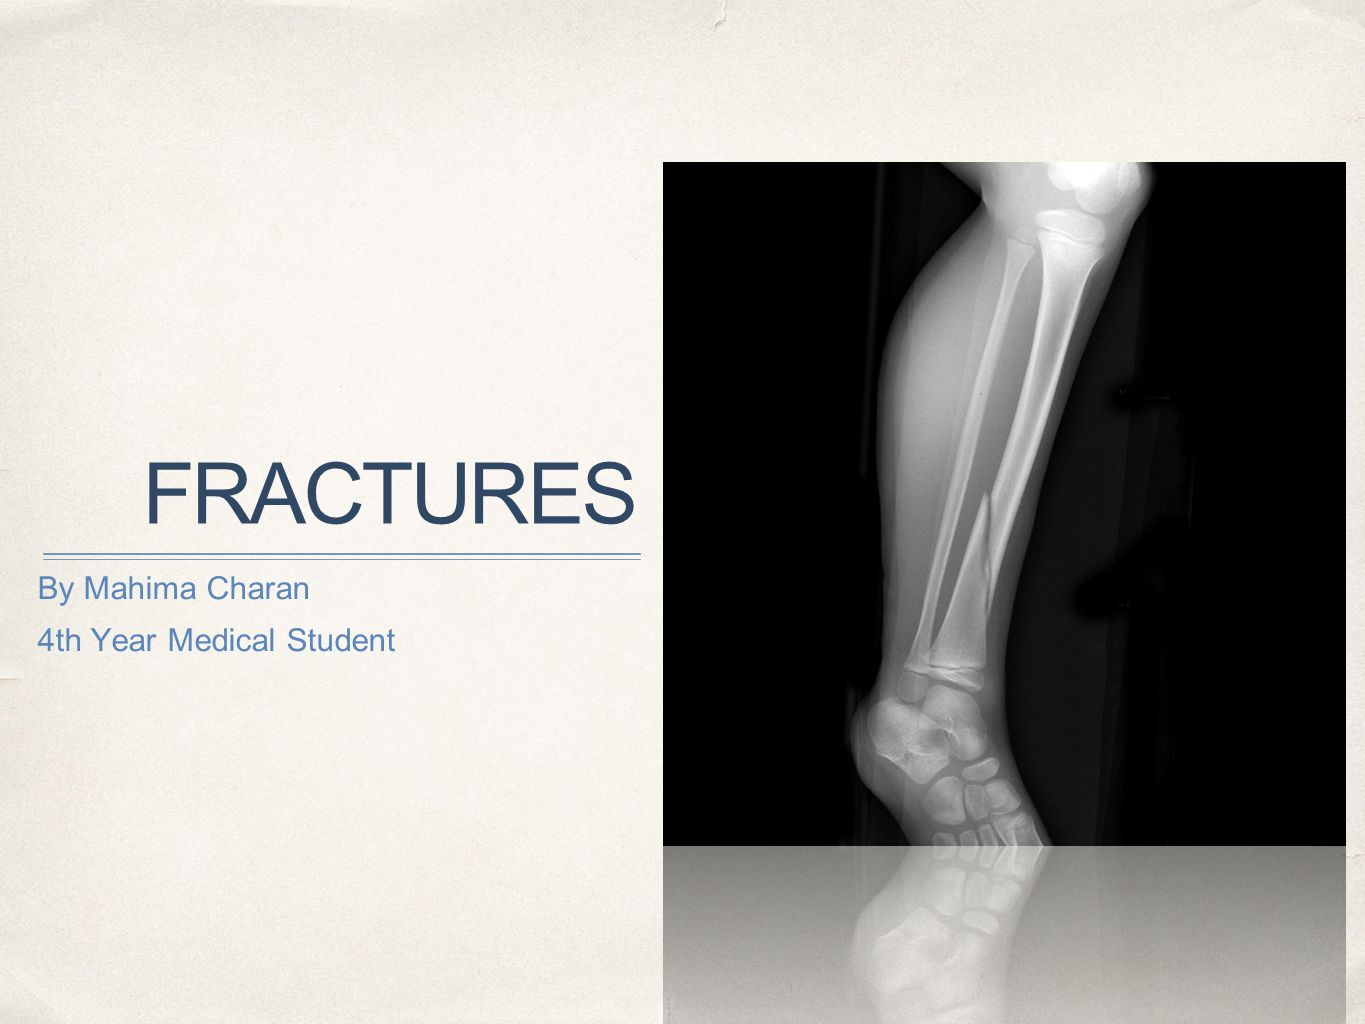 FRACTURES By Mahima Charan 4th Year Medical Student